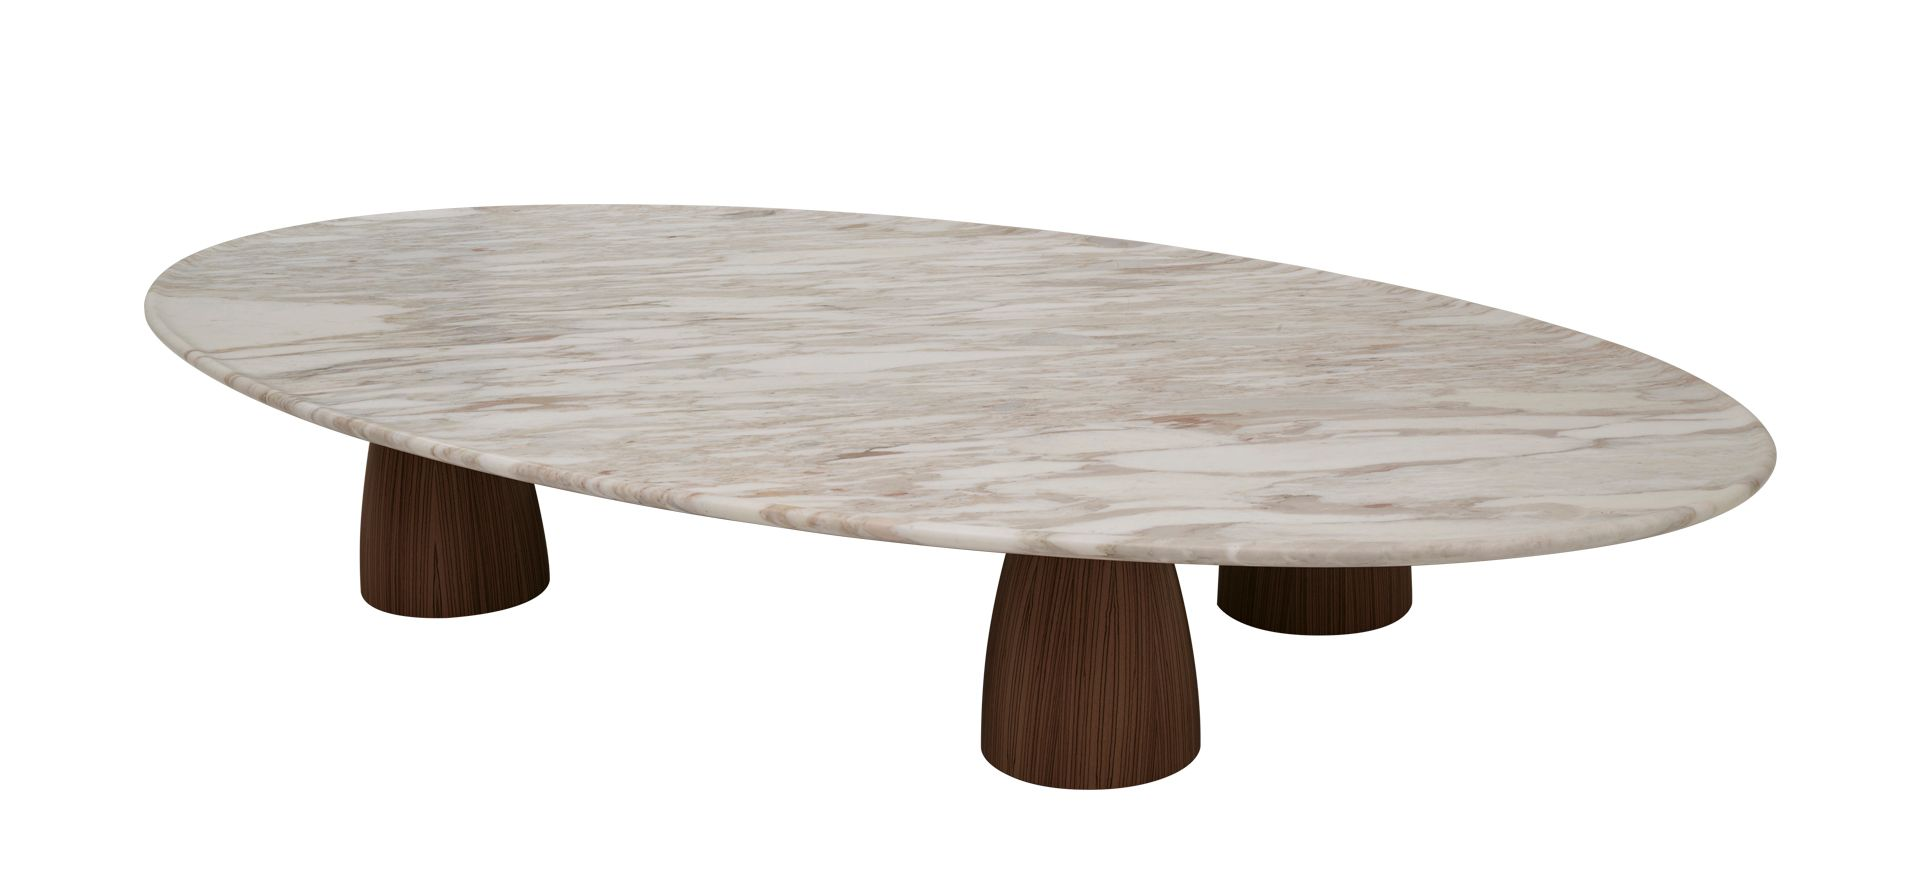 Lunique Is A Coffee Table With Wooden Legs And Marble Top From Promemoria S Amaranthine Tales Collection Coffee Table Calacatta Gold Marble Italian Furniture [ 880 x 1920 Pixel ]